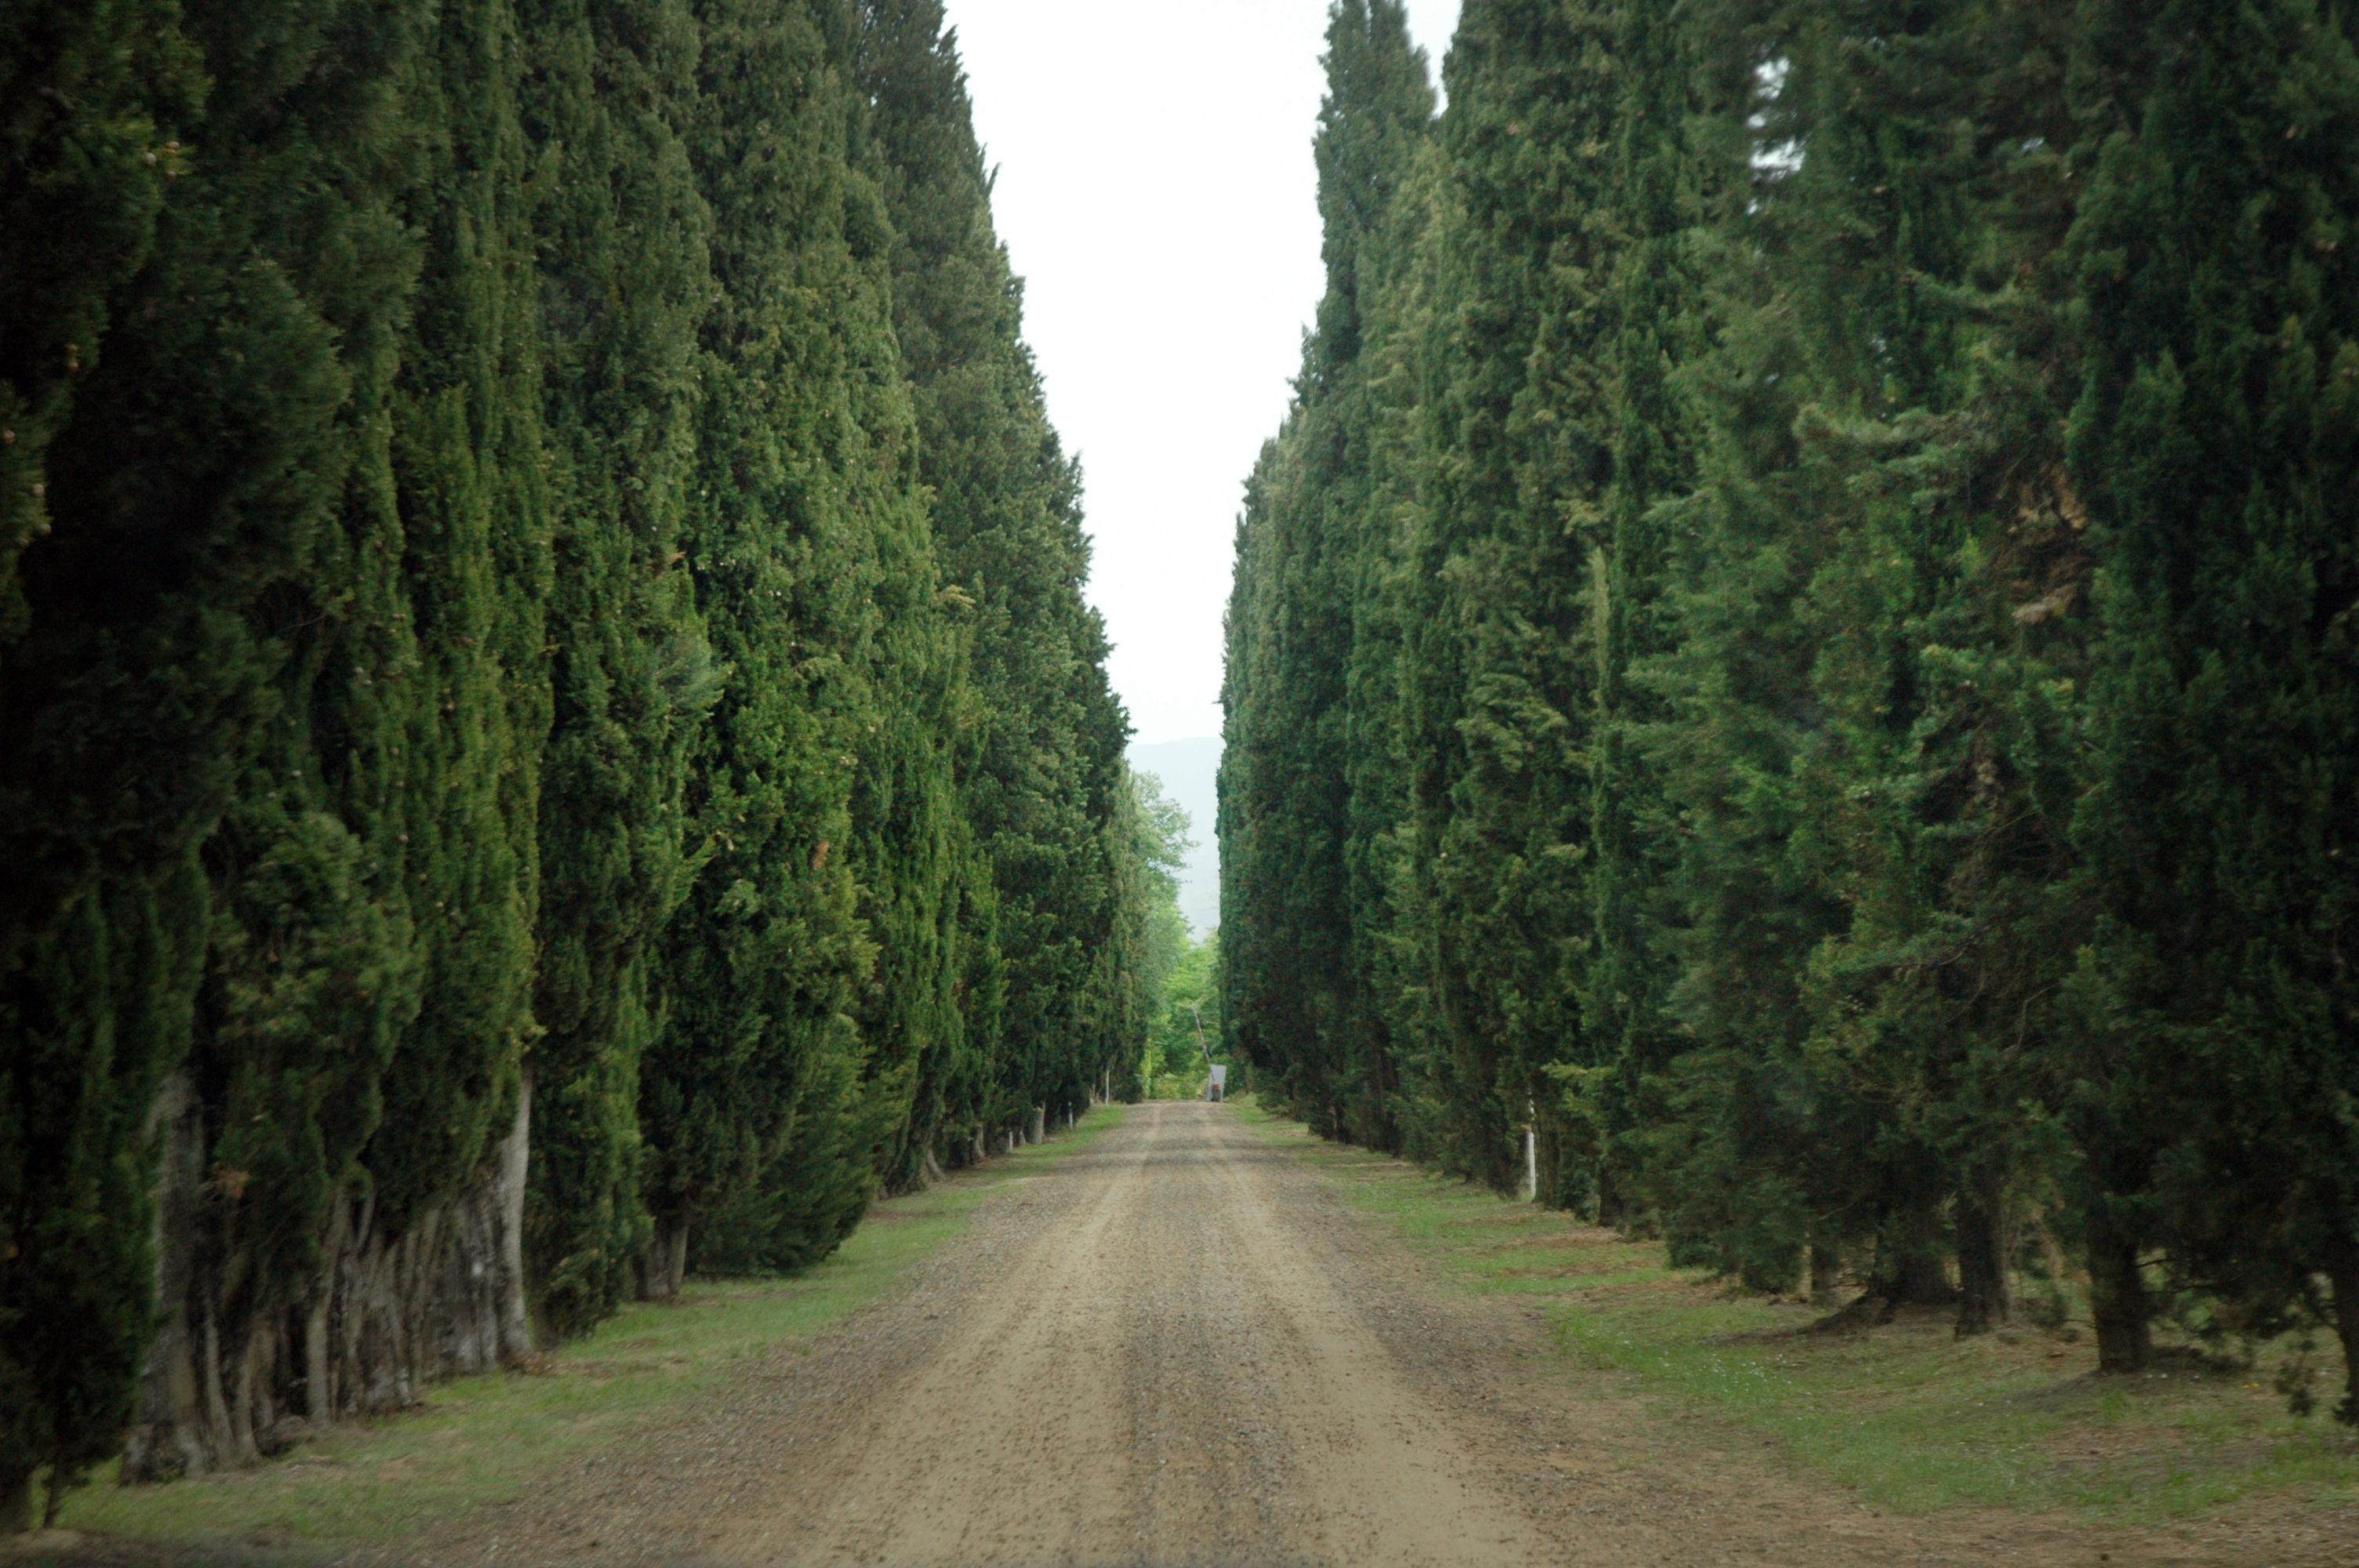 Entrance to Il Palagio in Tuscany at Saturdaysoul.com